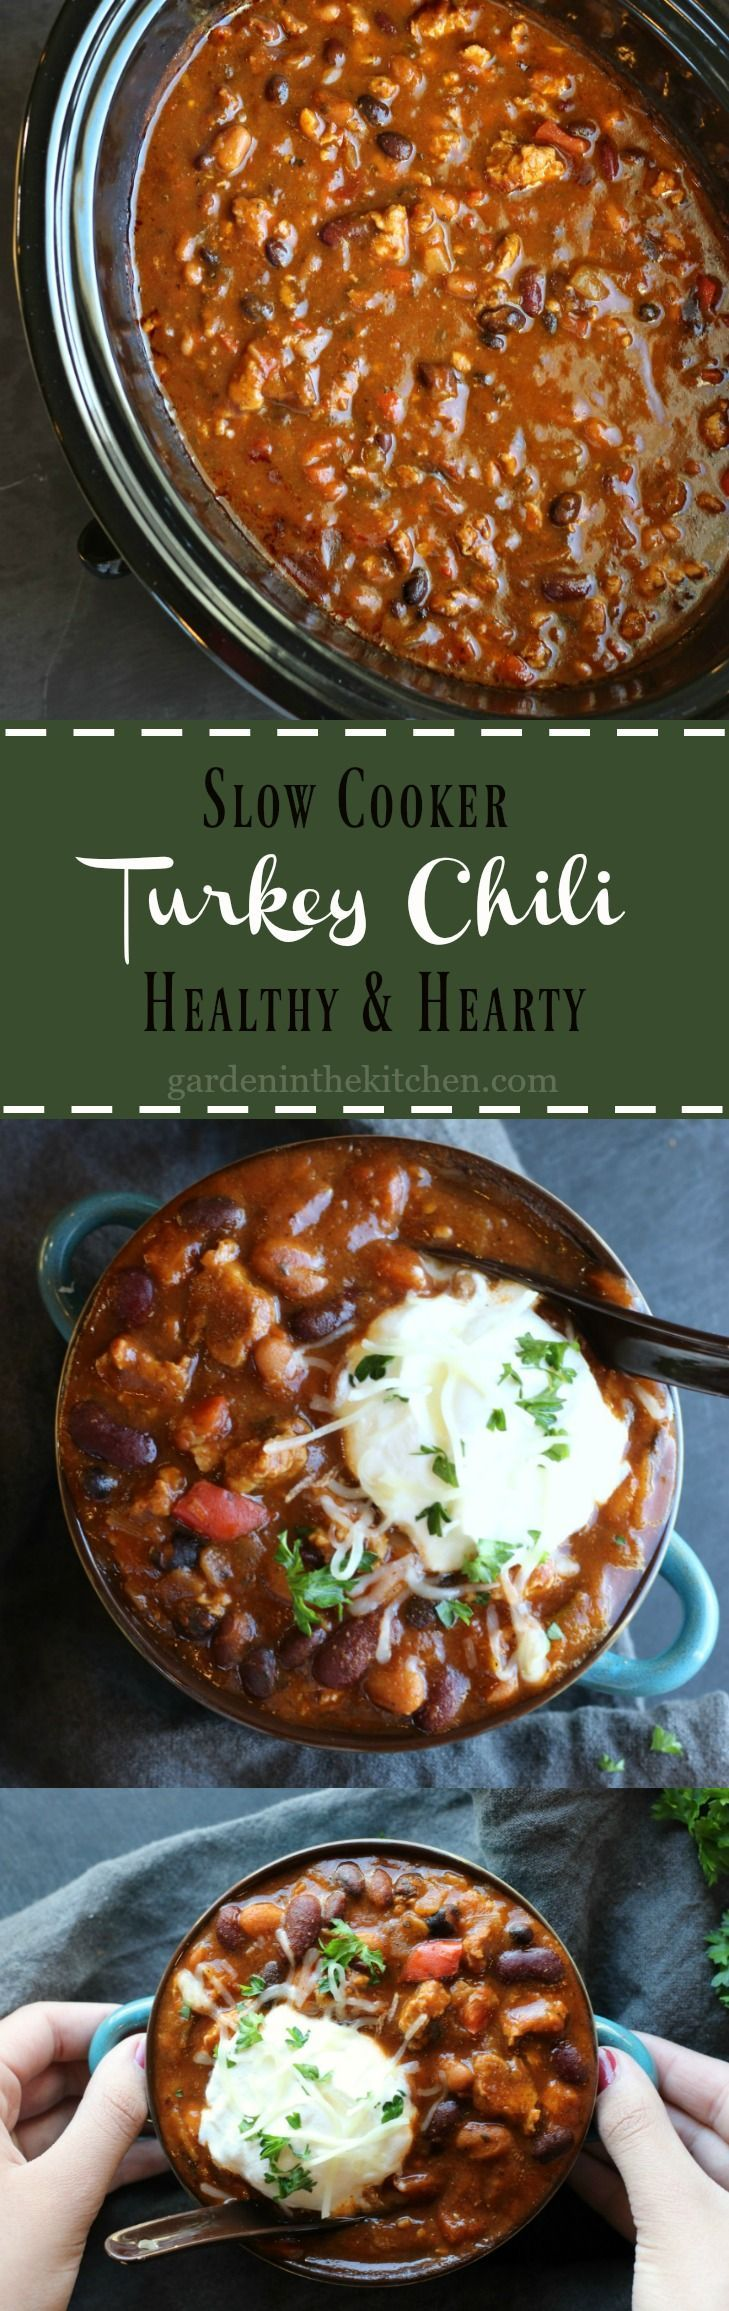 Healthy and Hearty Slow Cooker Turkey Chili | http://gardeninthekitchen.com